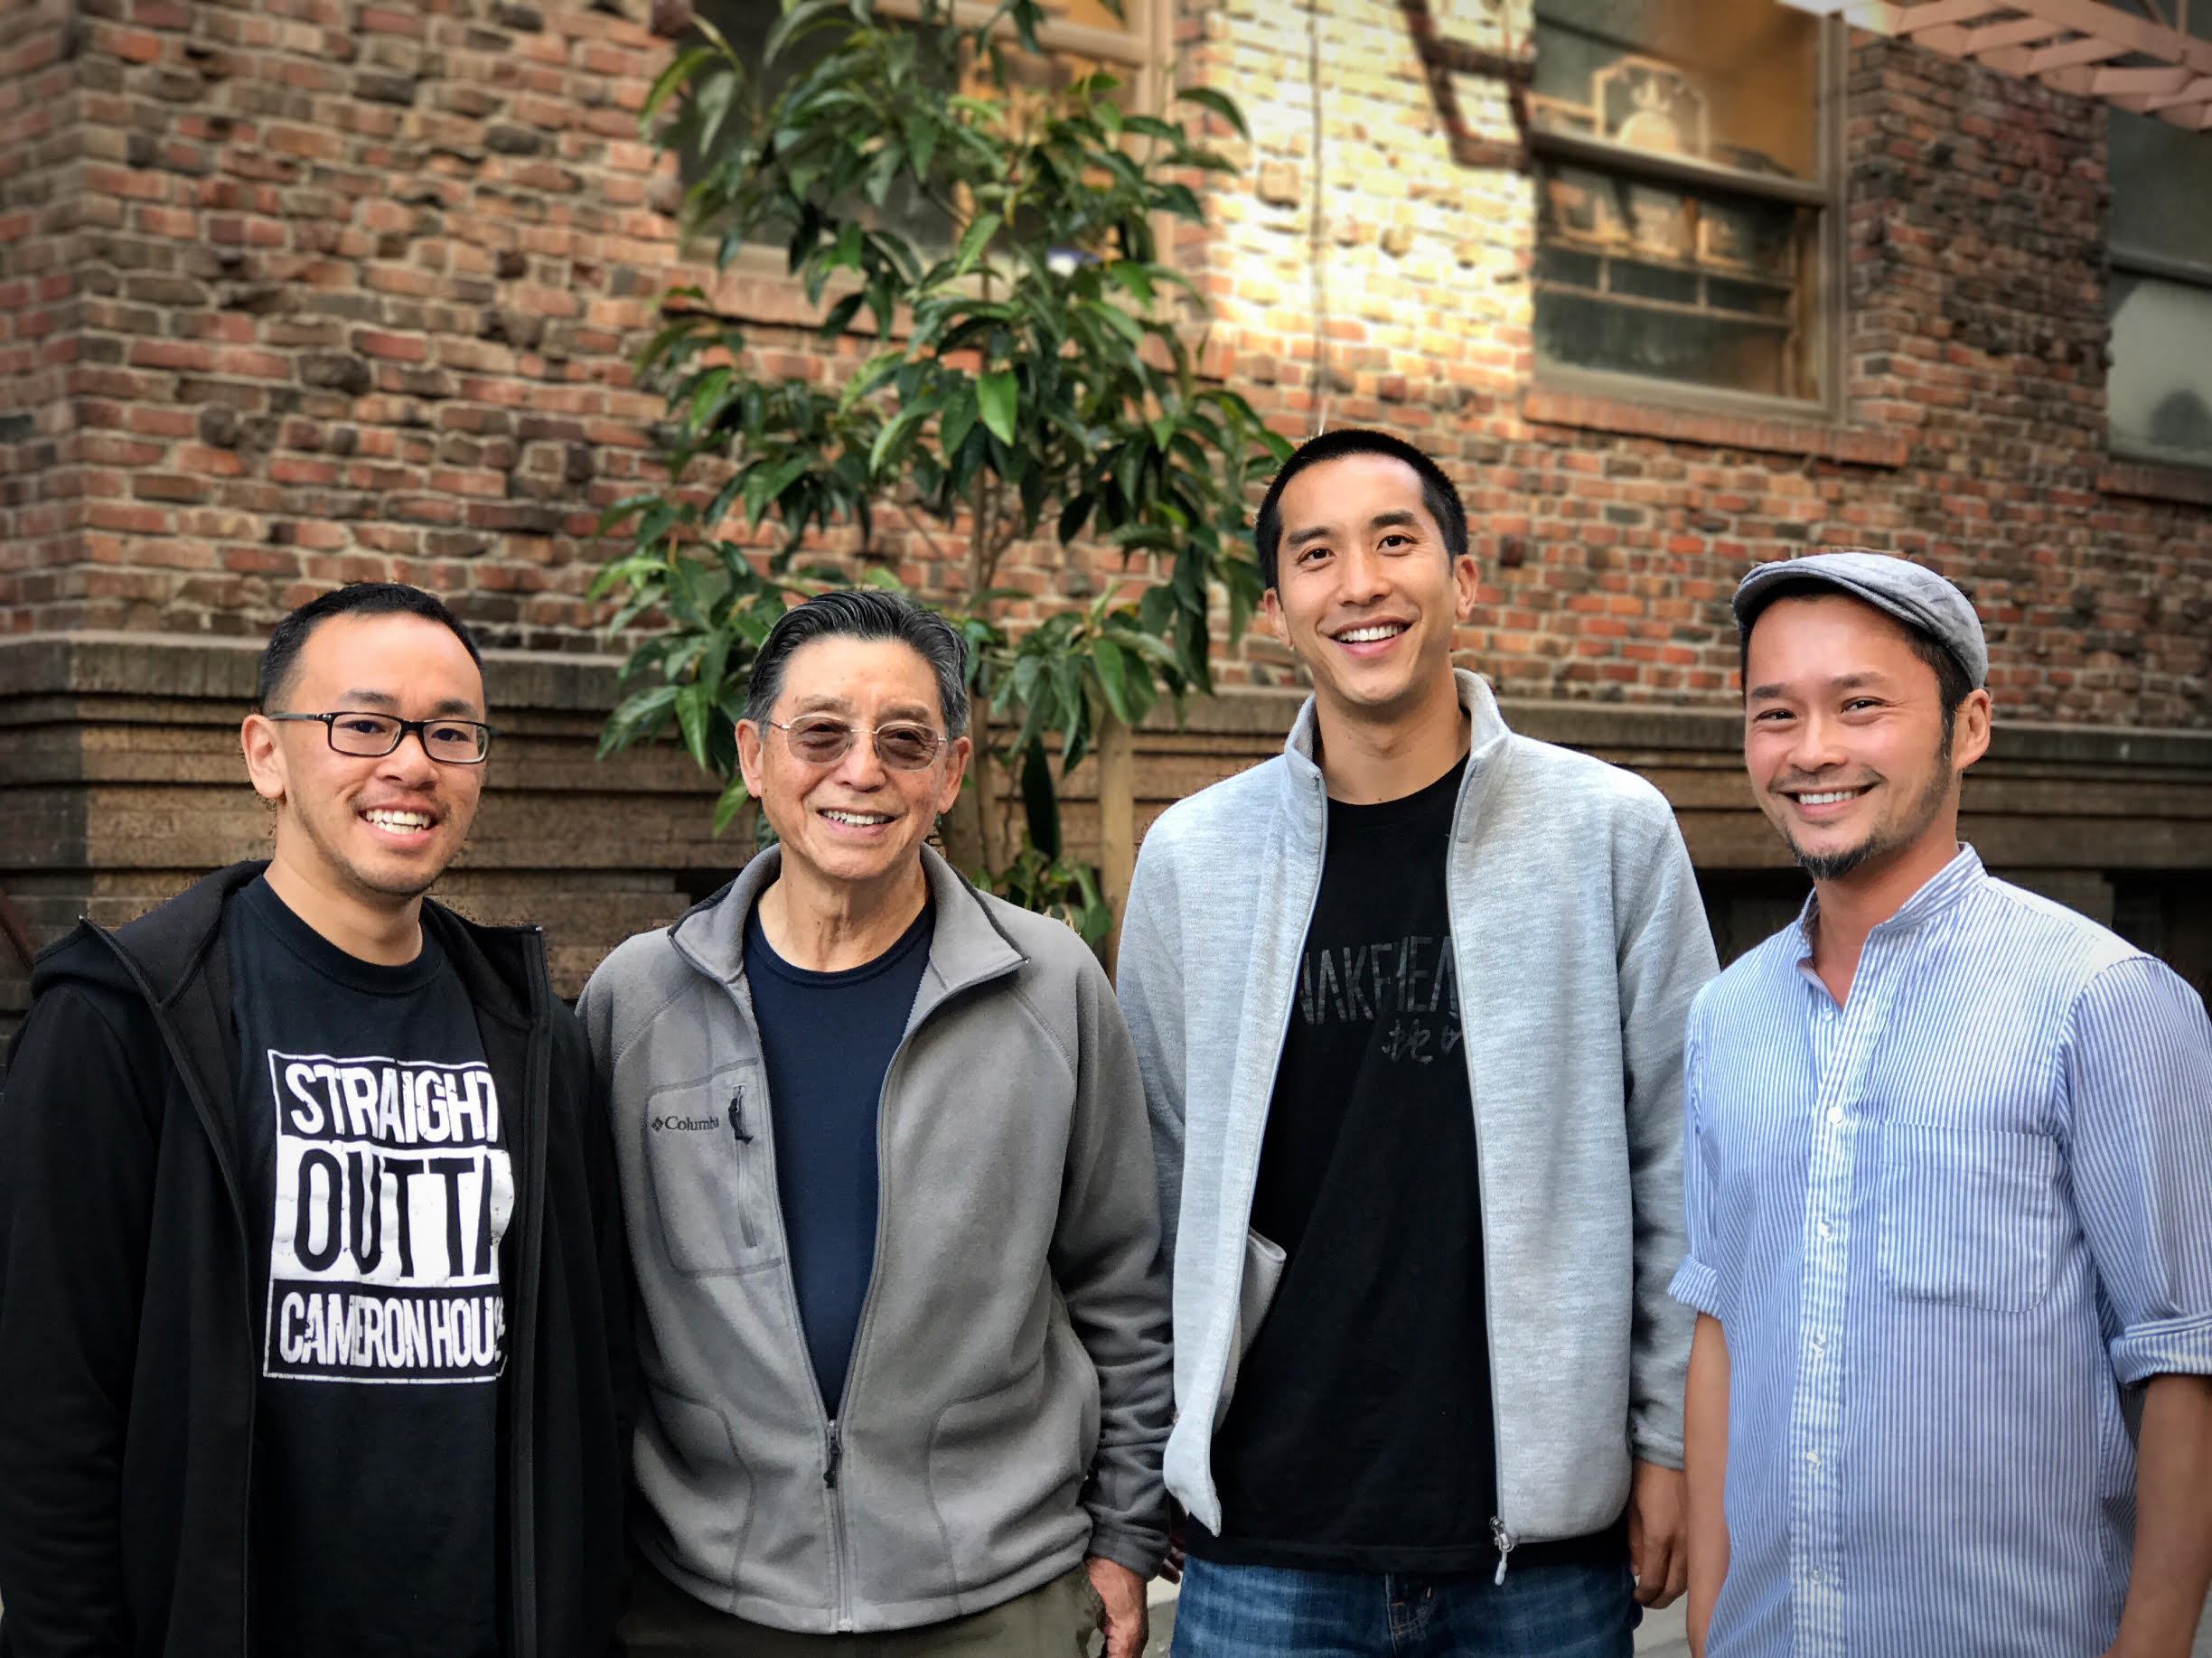 Our team: Anson Ho (Cinematographer, Co-Editor), Harry Chuck (Producer, Director, Archival Cinematographer), Josh Chuck (Co-Producer, Co-Editor), James Chan (Producer)